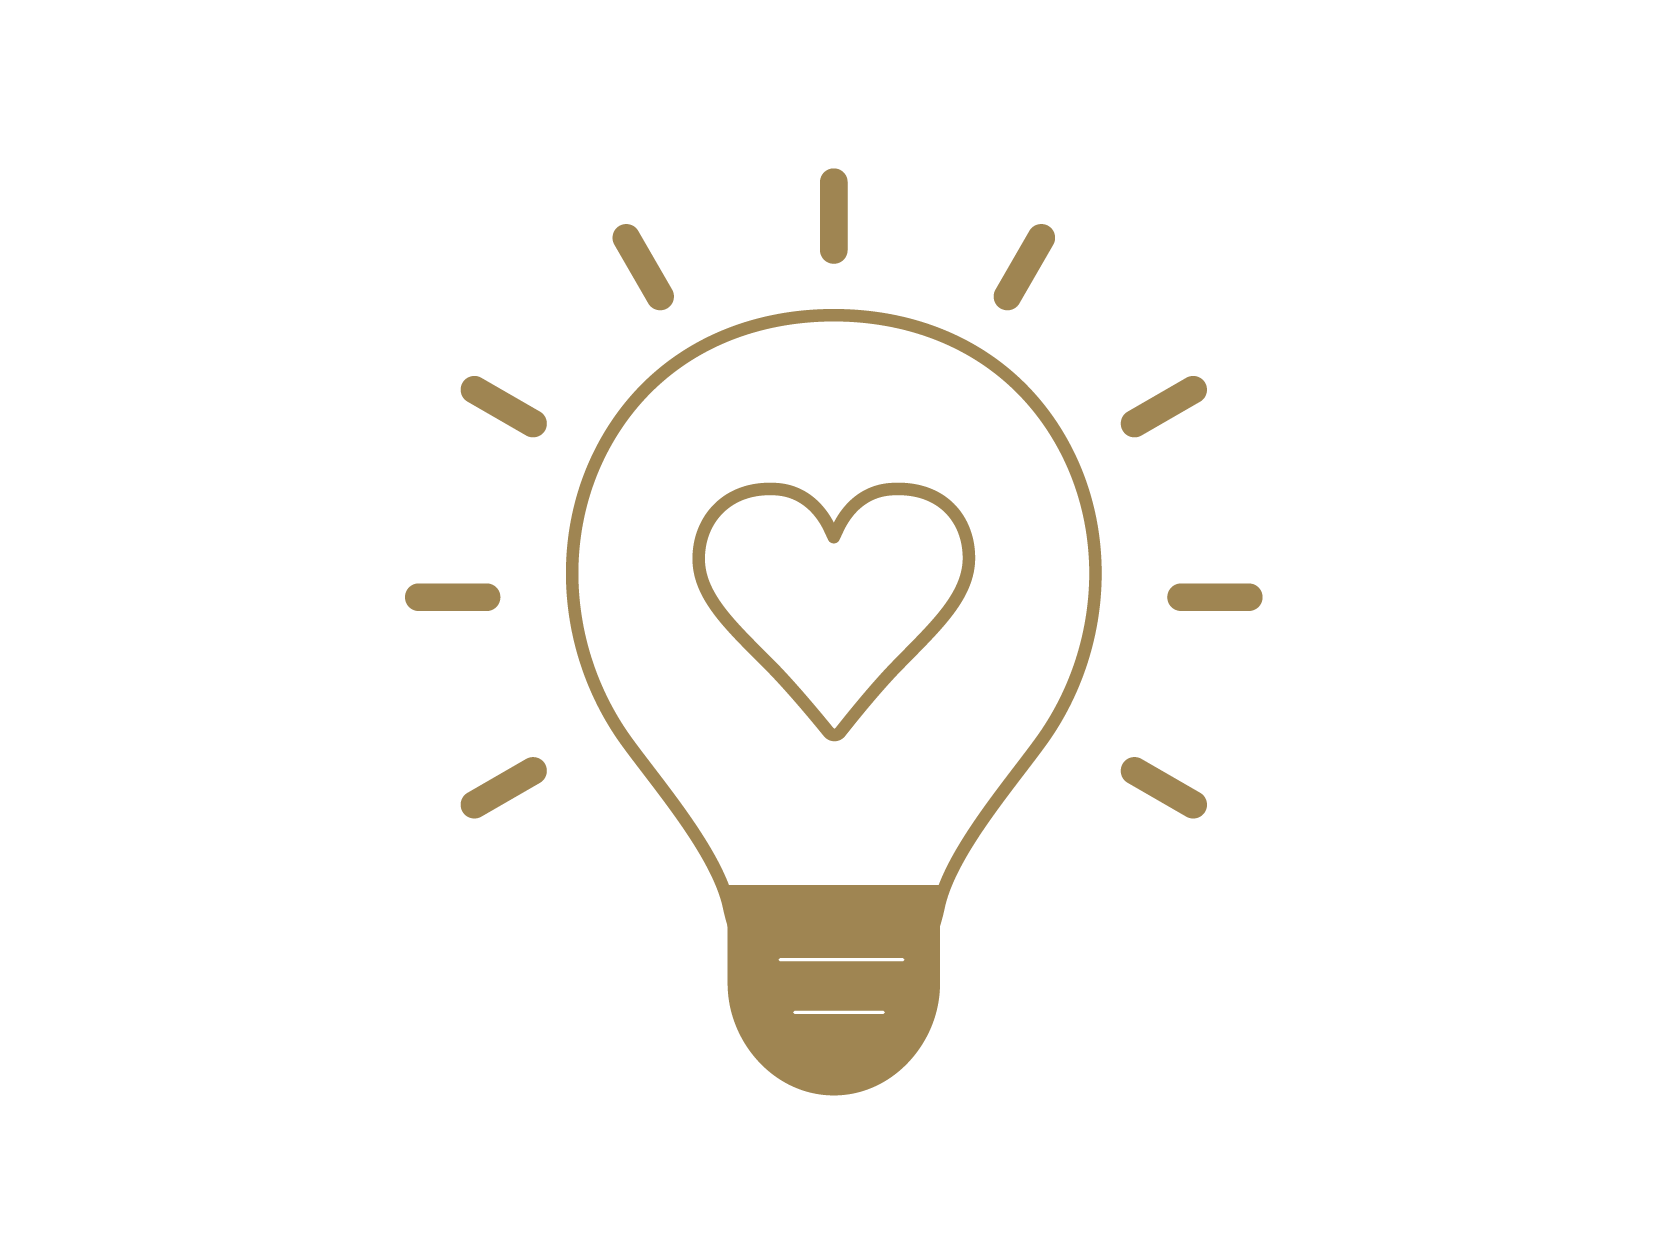 Icon of a light bulb with a heart inside